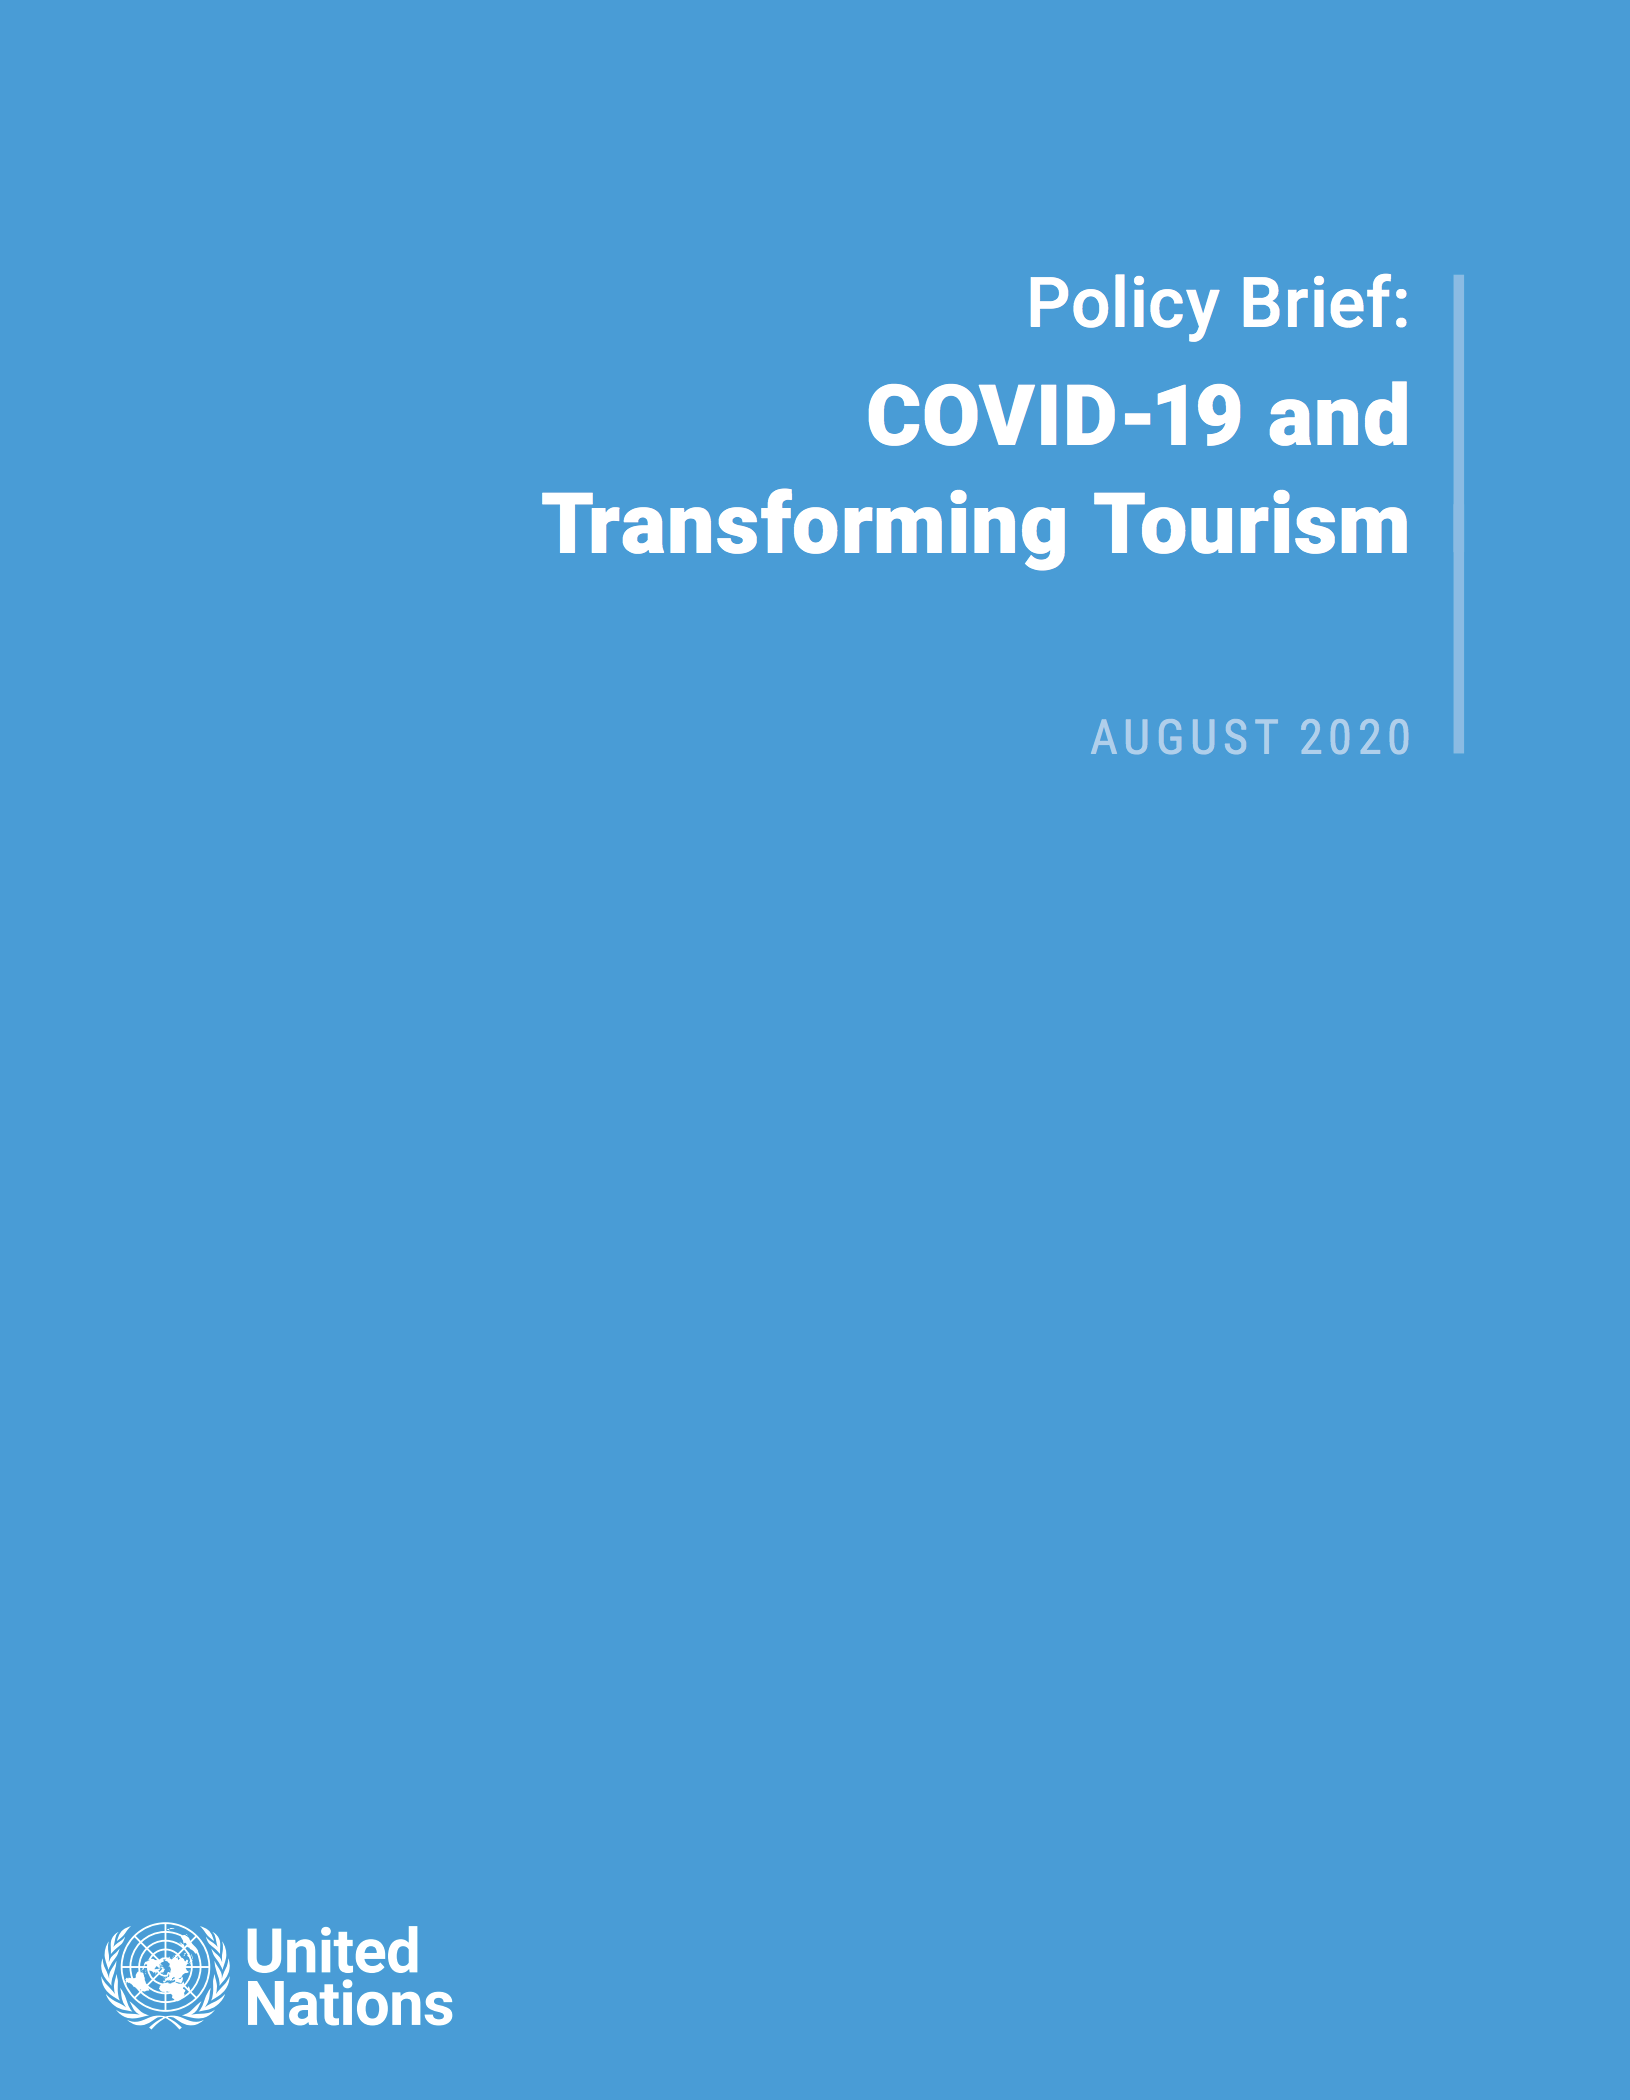 Policy Brief on Tourism and COVID-19